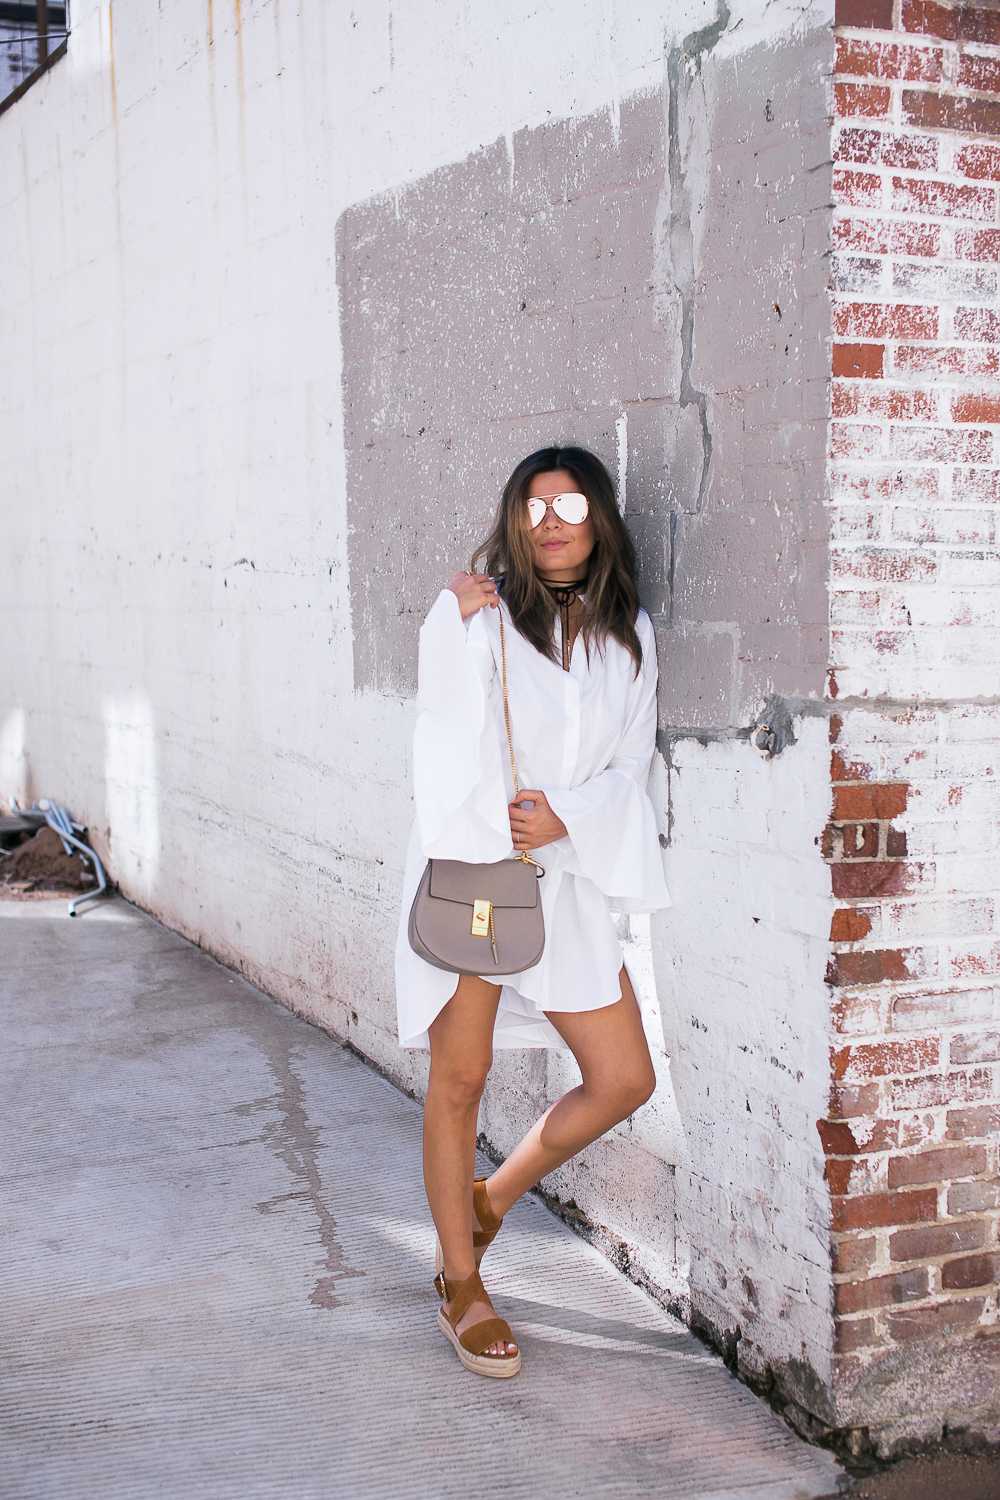 Style MBA wears Storets Shirtdress and Raye Sandals and Chloe Bag